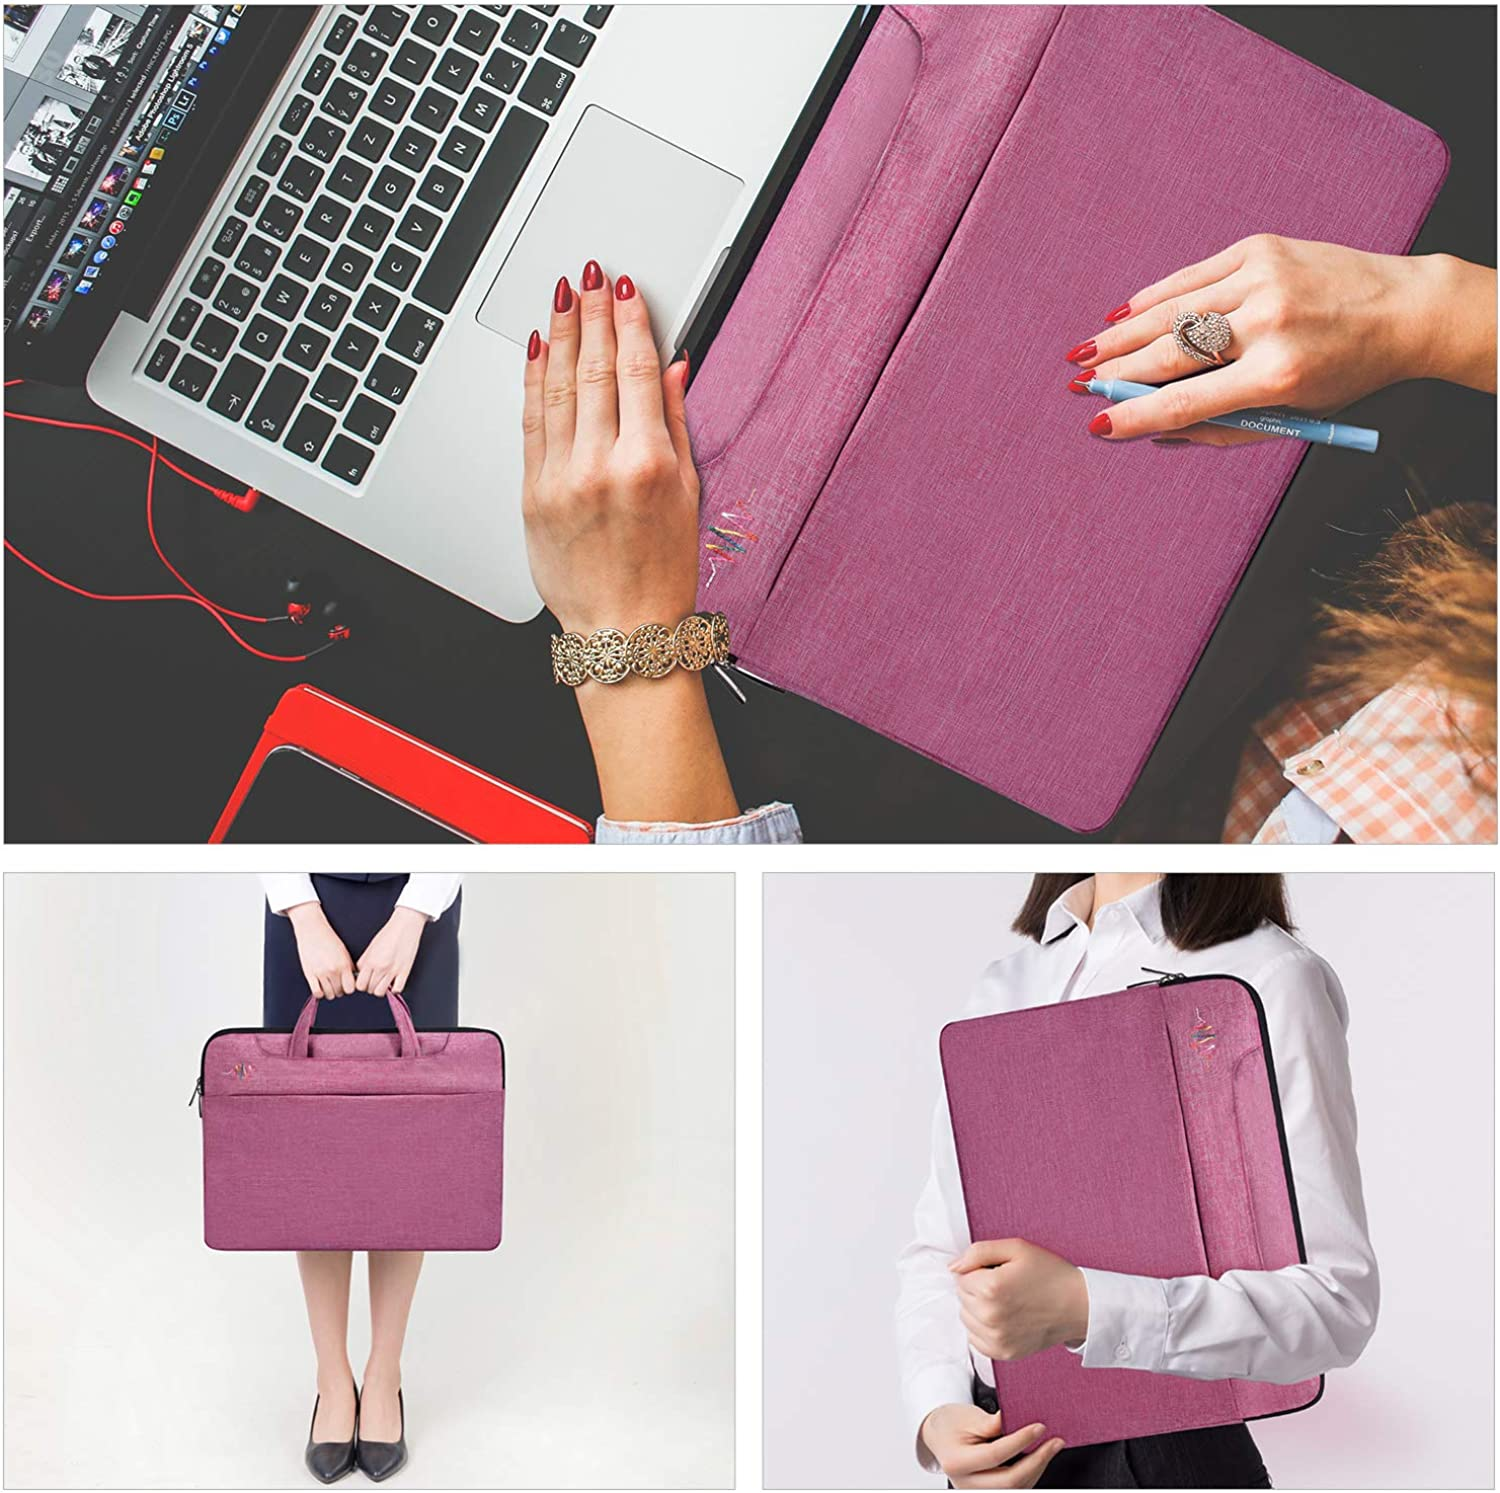 Laptop Bag Berry Pattern Cherry Cherries 15-15.4 Inch Laptop Case College Students Business People Office Workers Briefcase Messenger Shoulder Bag for Men Women